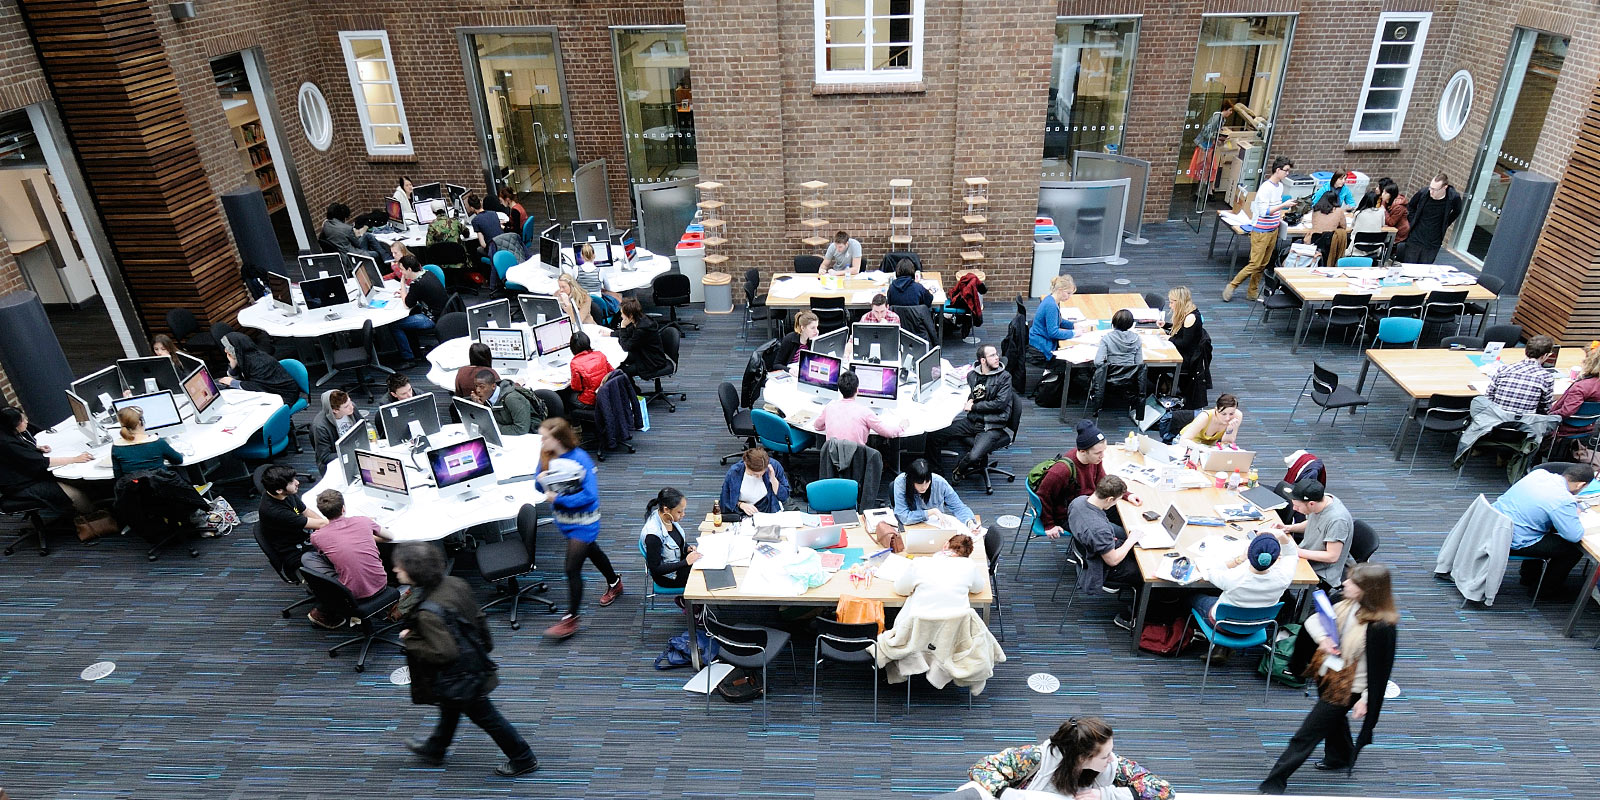 kingston-university-0e3df80-library-and-learning-services.jpg (1600×800)